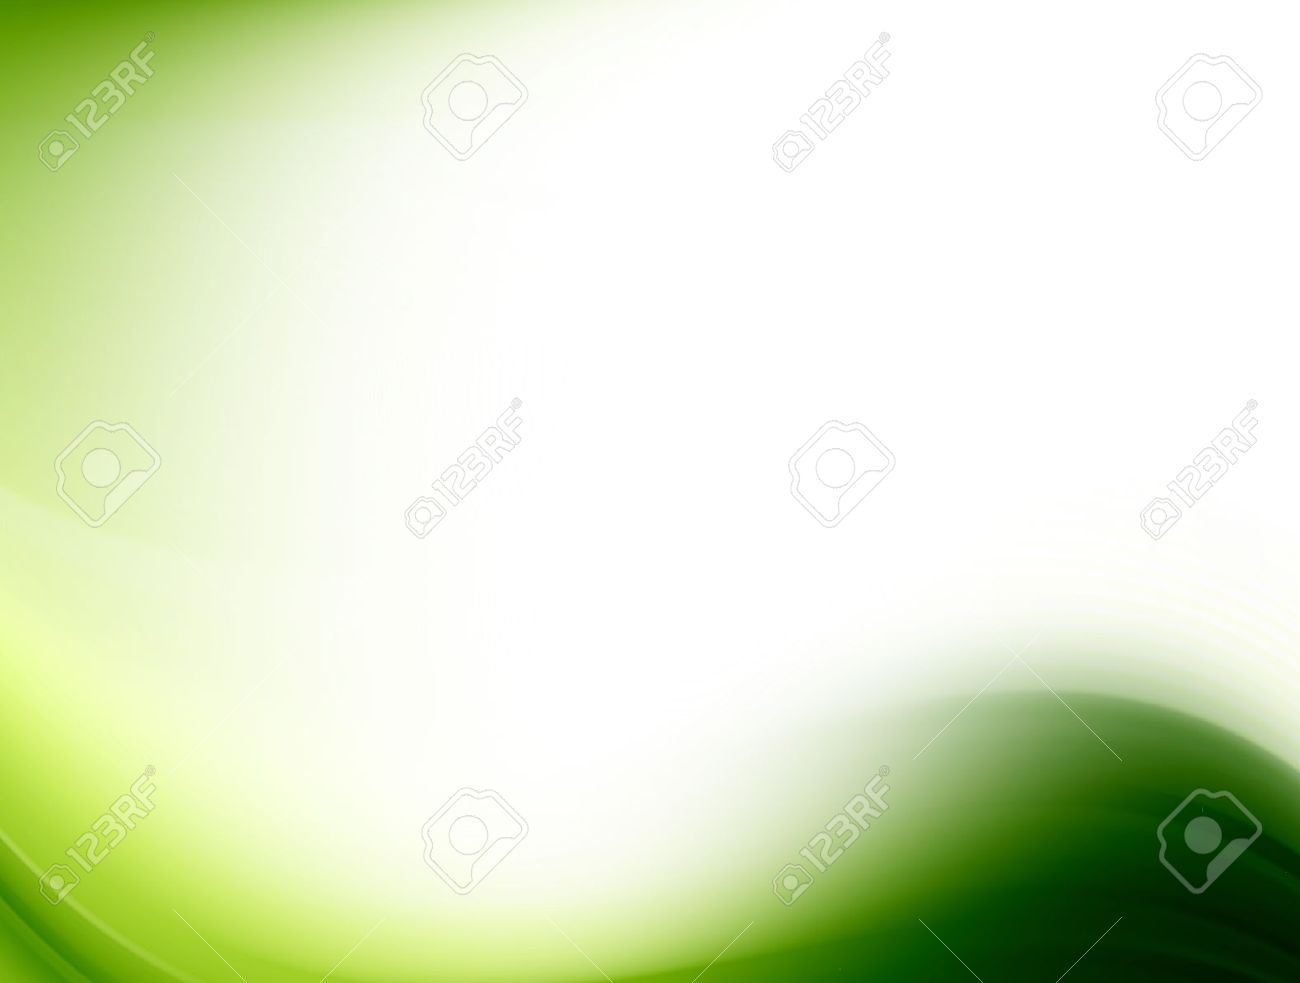 green wave on white background. Abstract illustration Stock Illustration - 9781474